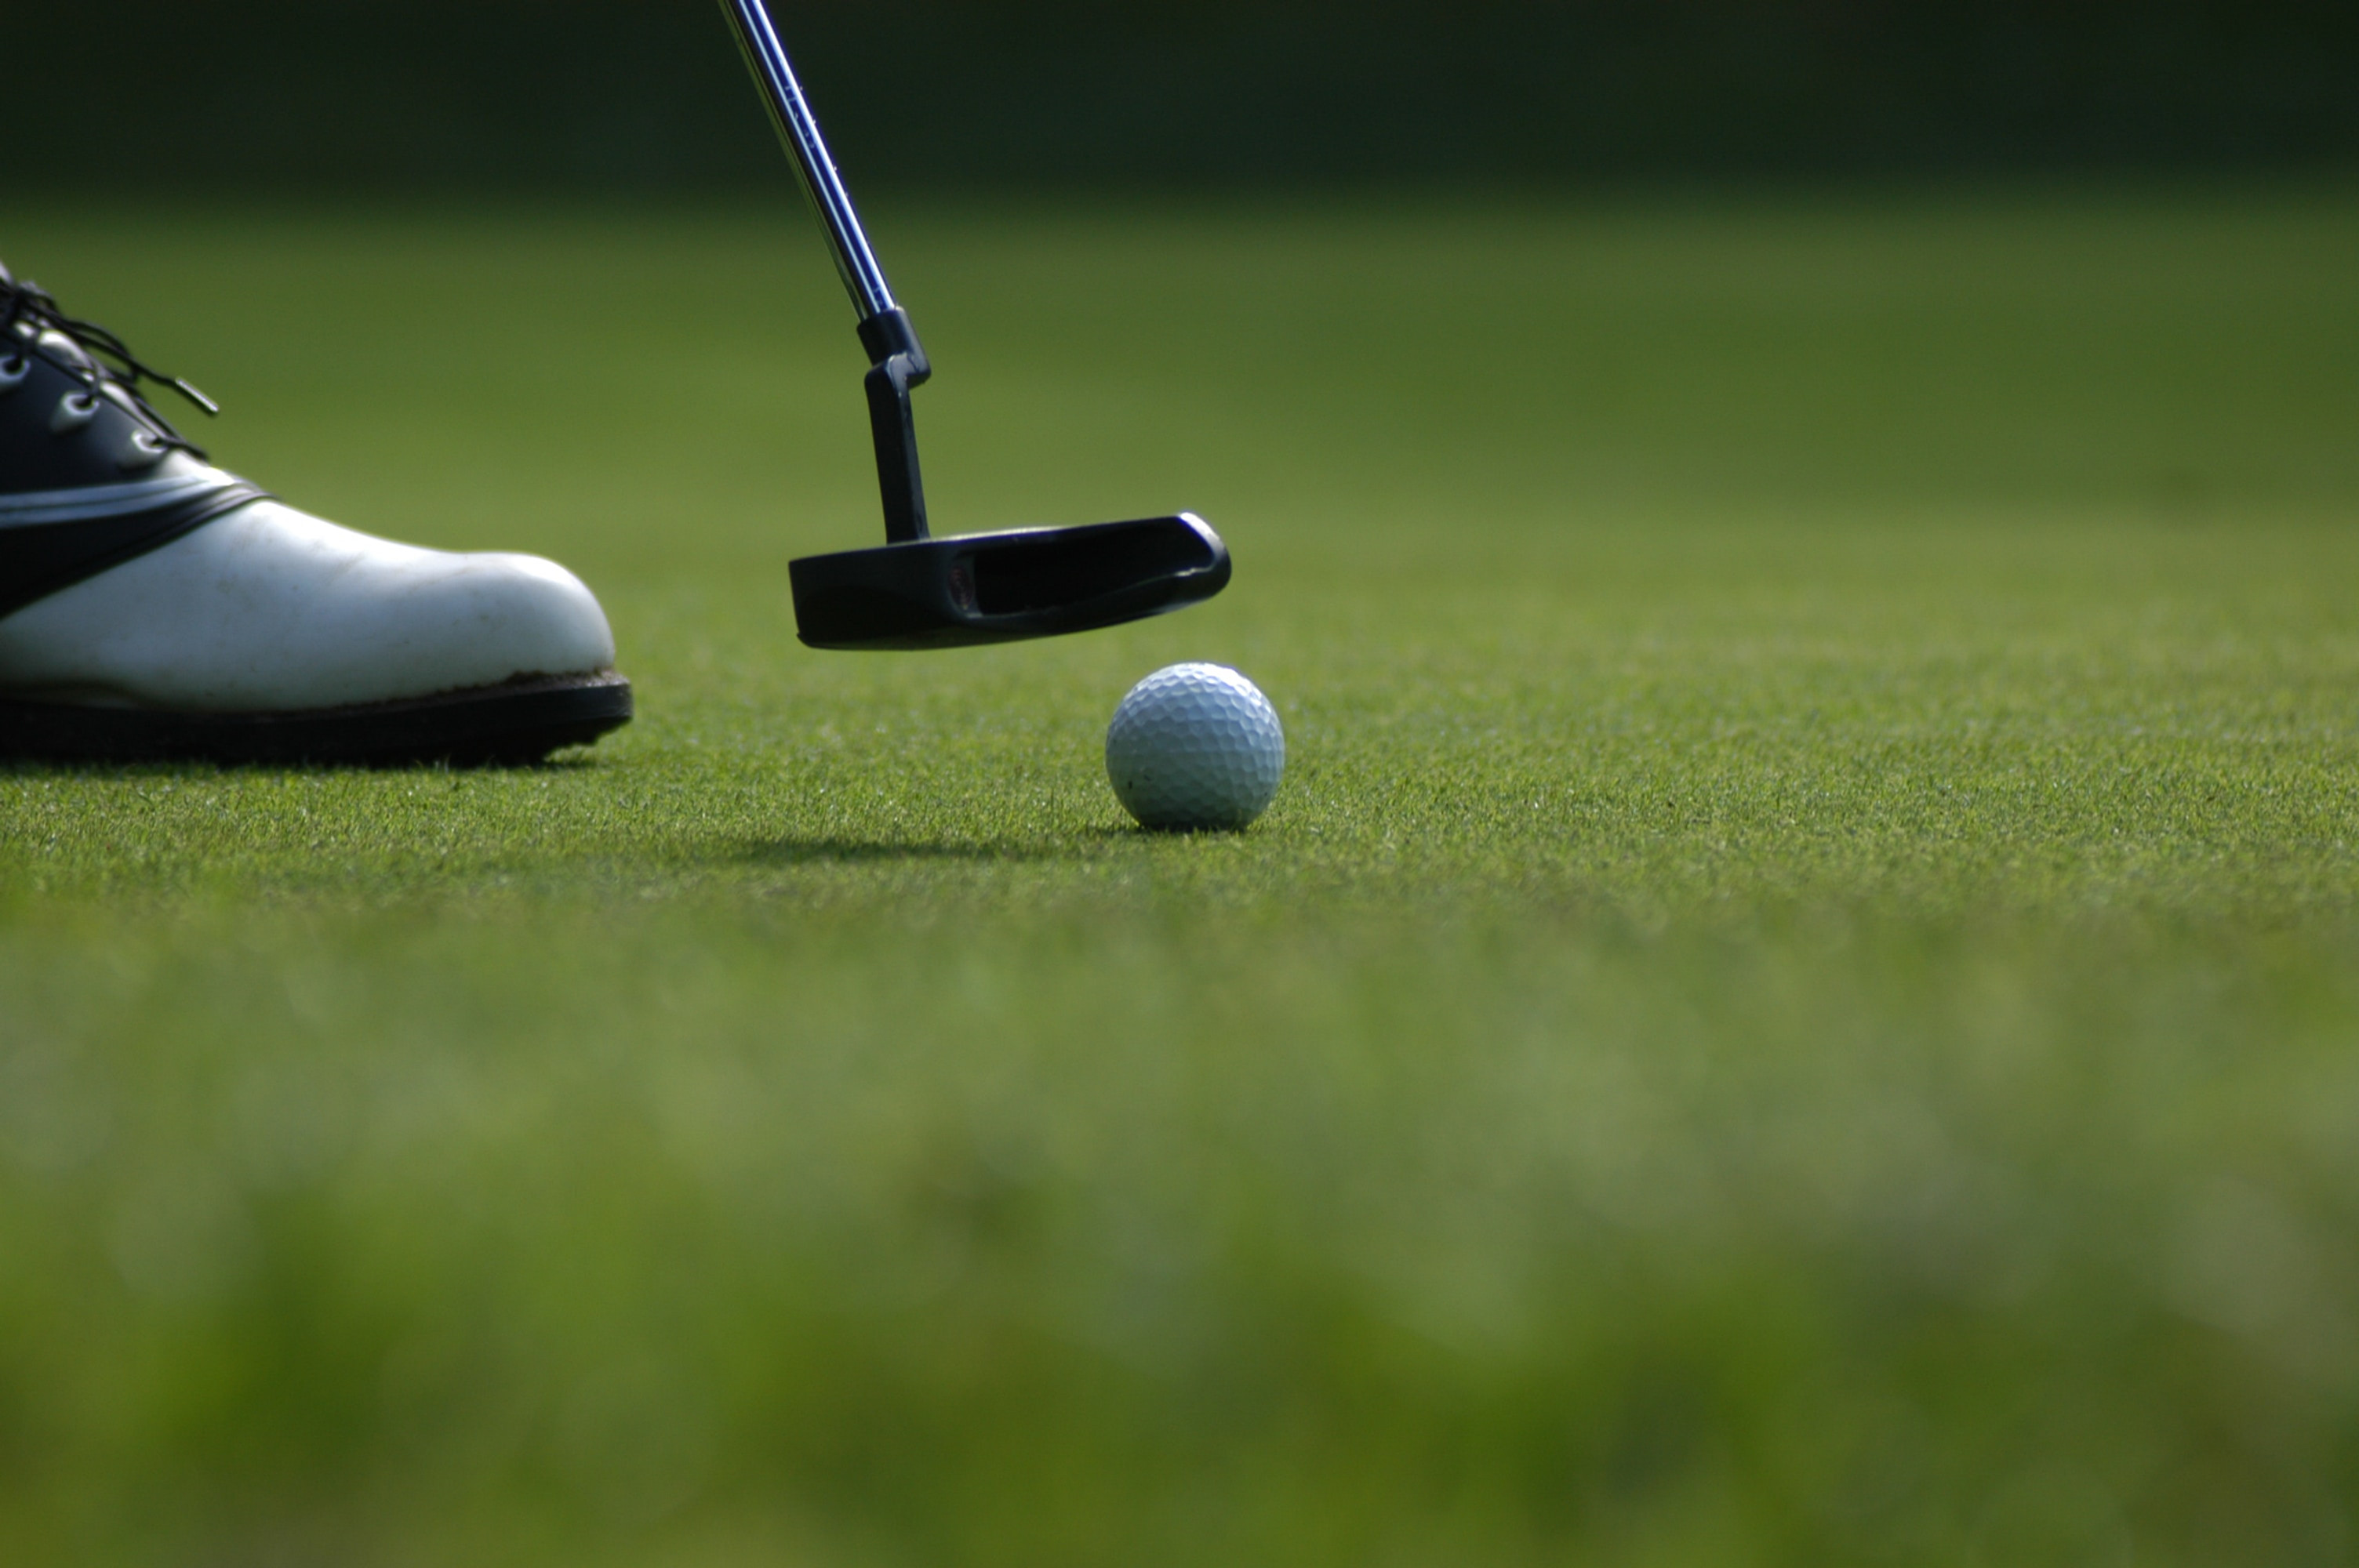 LECONS APPROCHES ET PUTTS